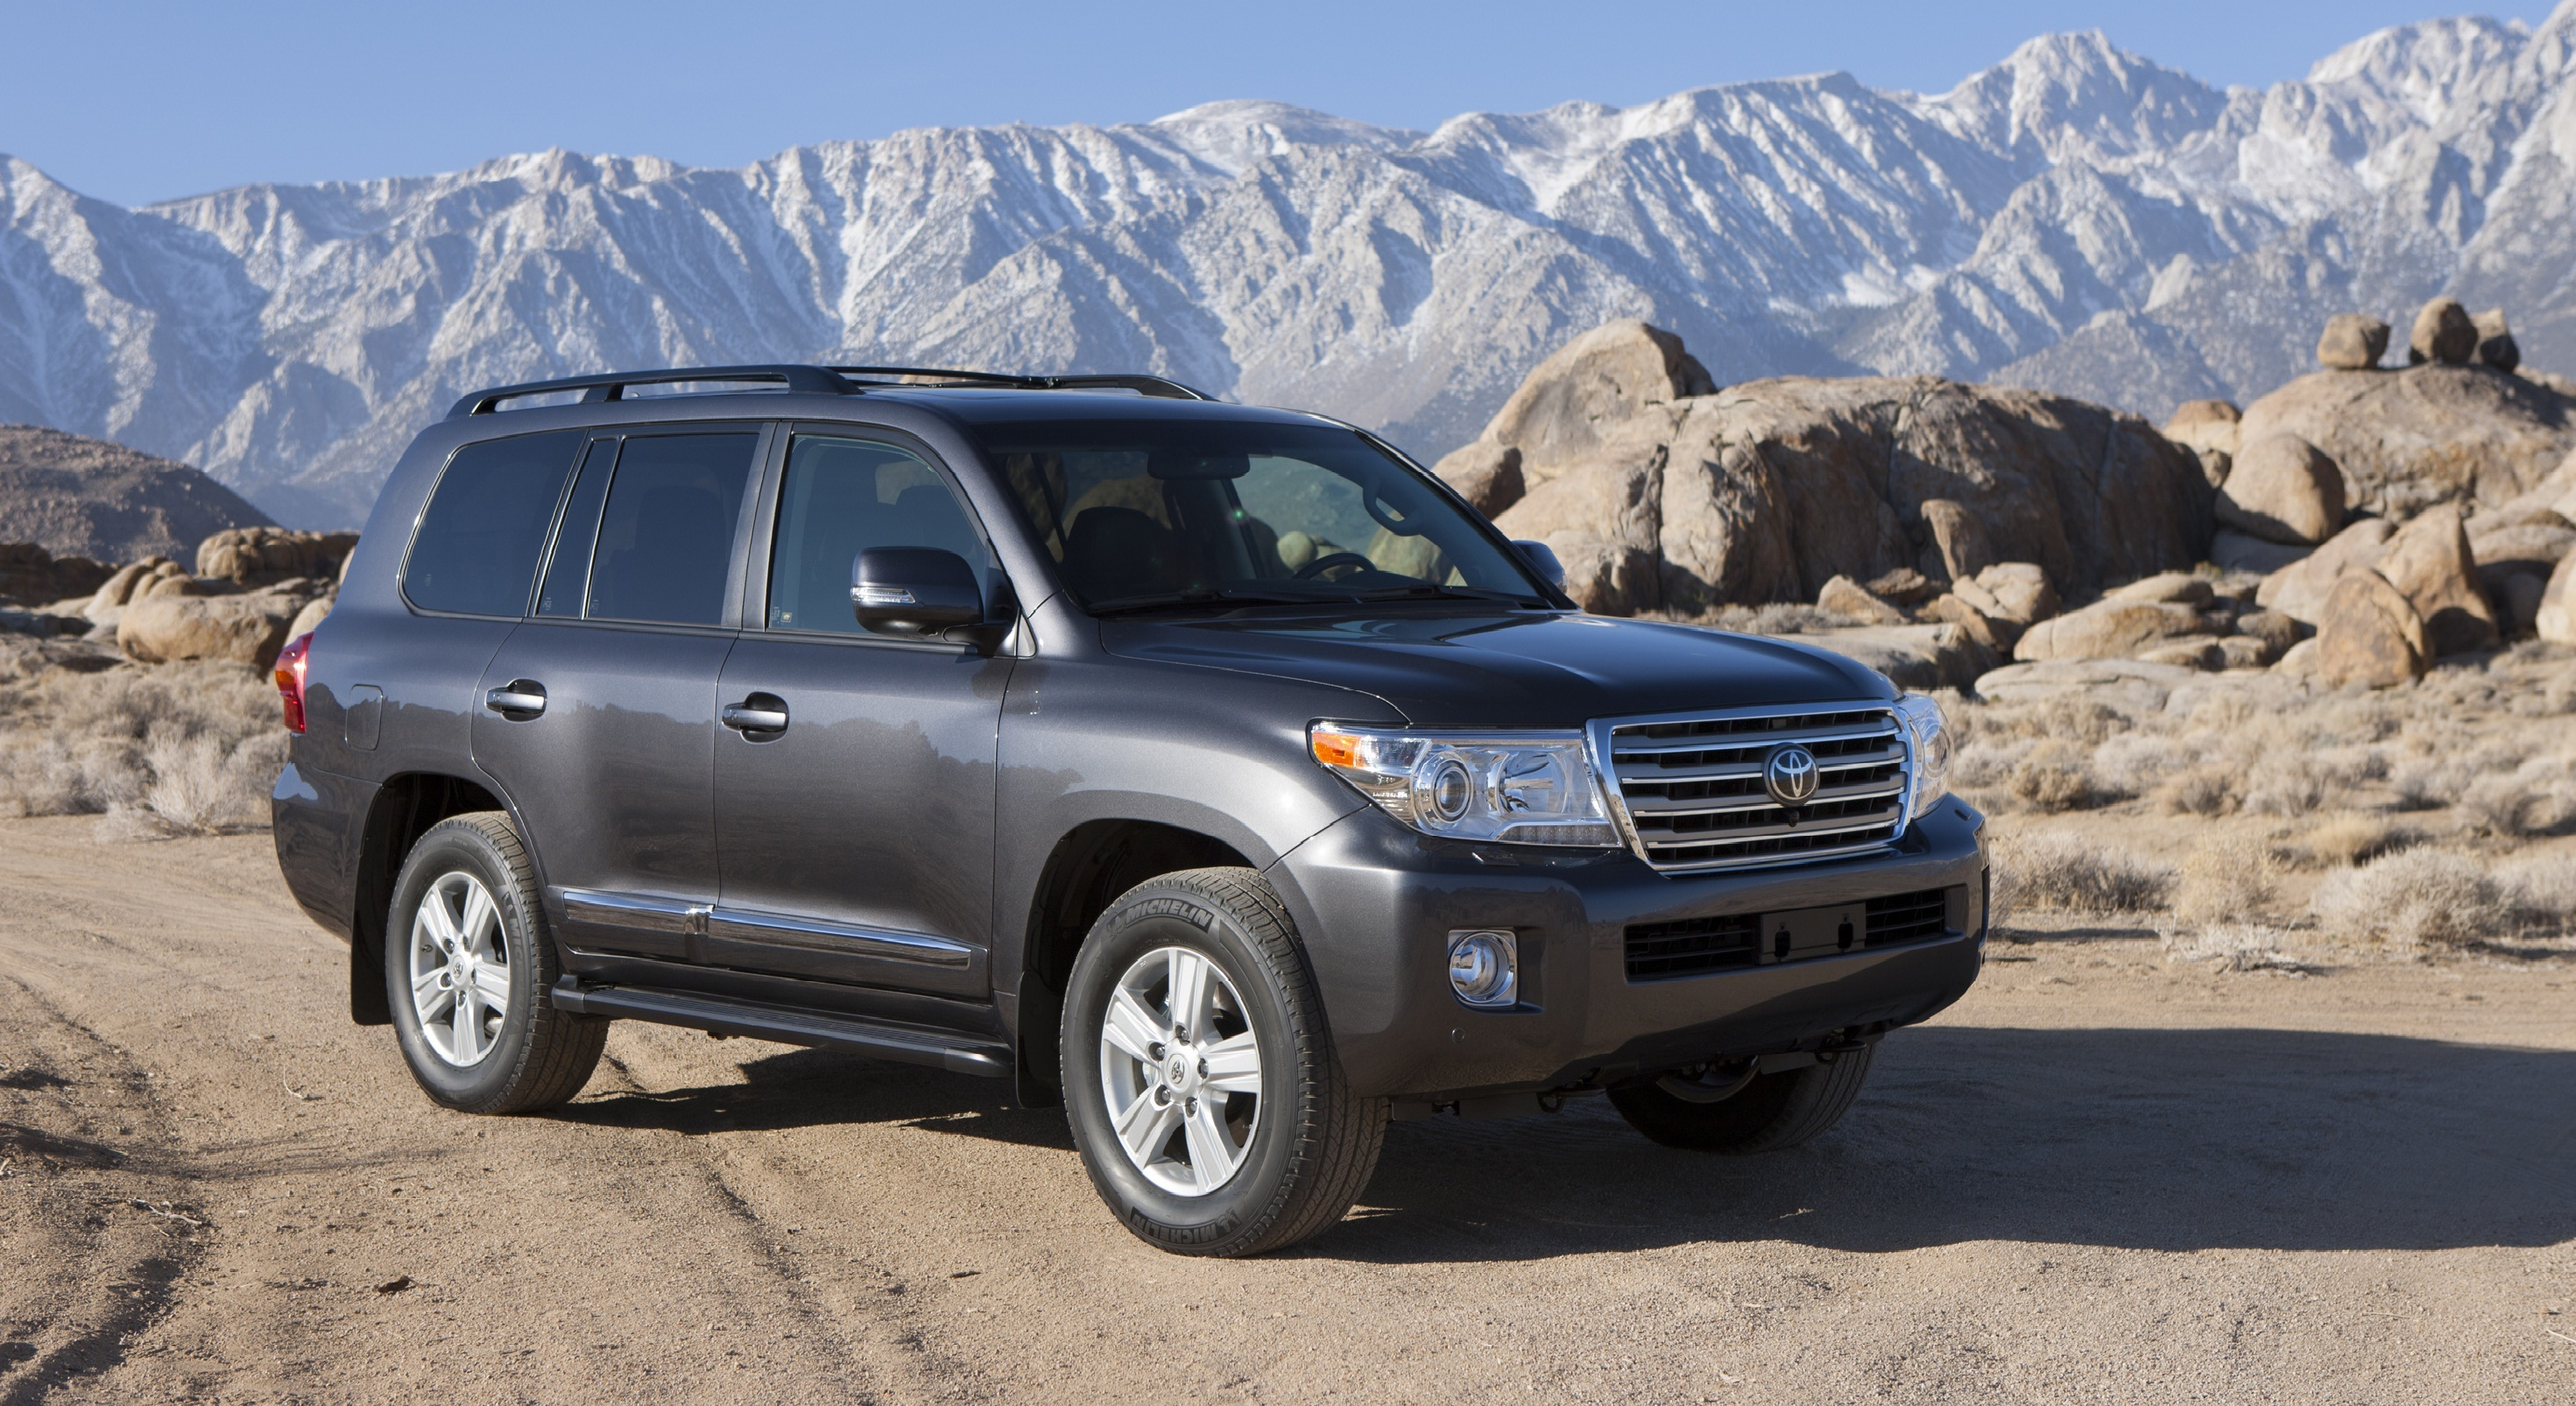 ������ Toyota Land Cruiser ����� ��� ������ ����